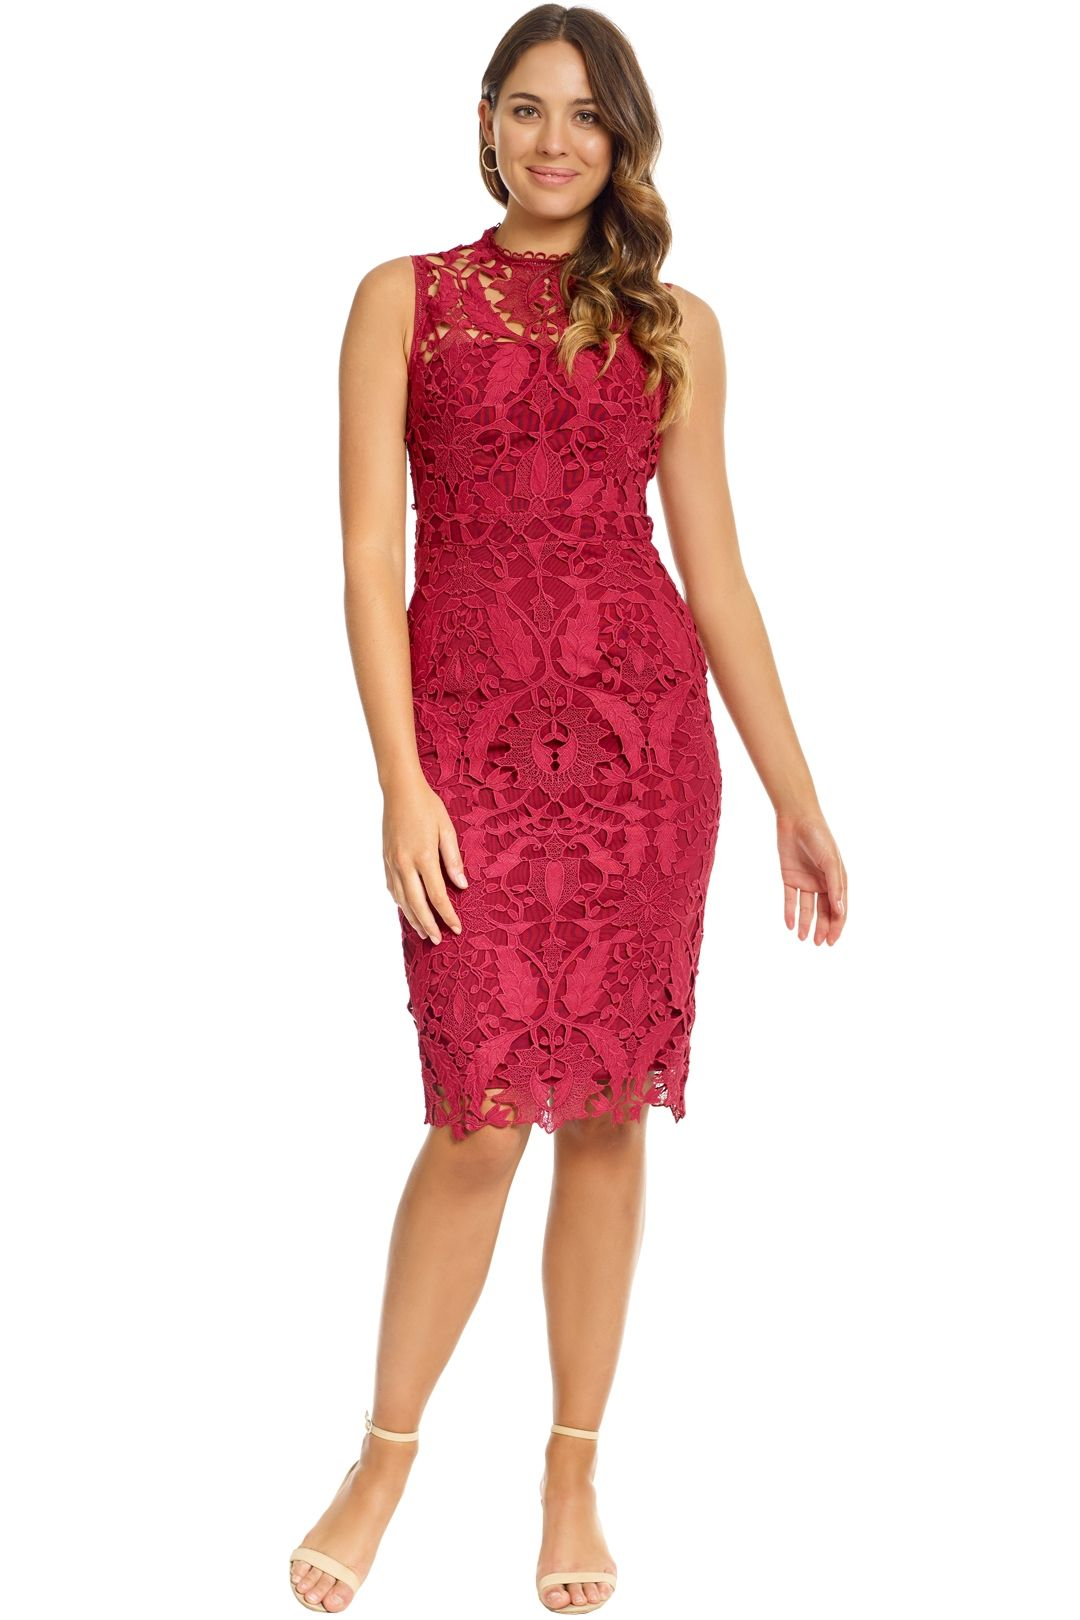 Grace and Hart - Prosecco Dress - Red - Front